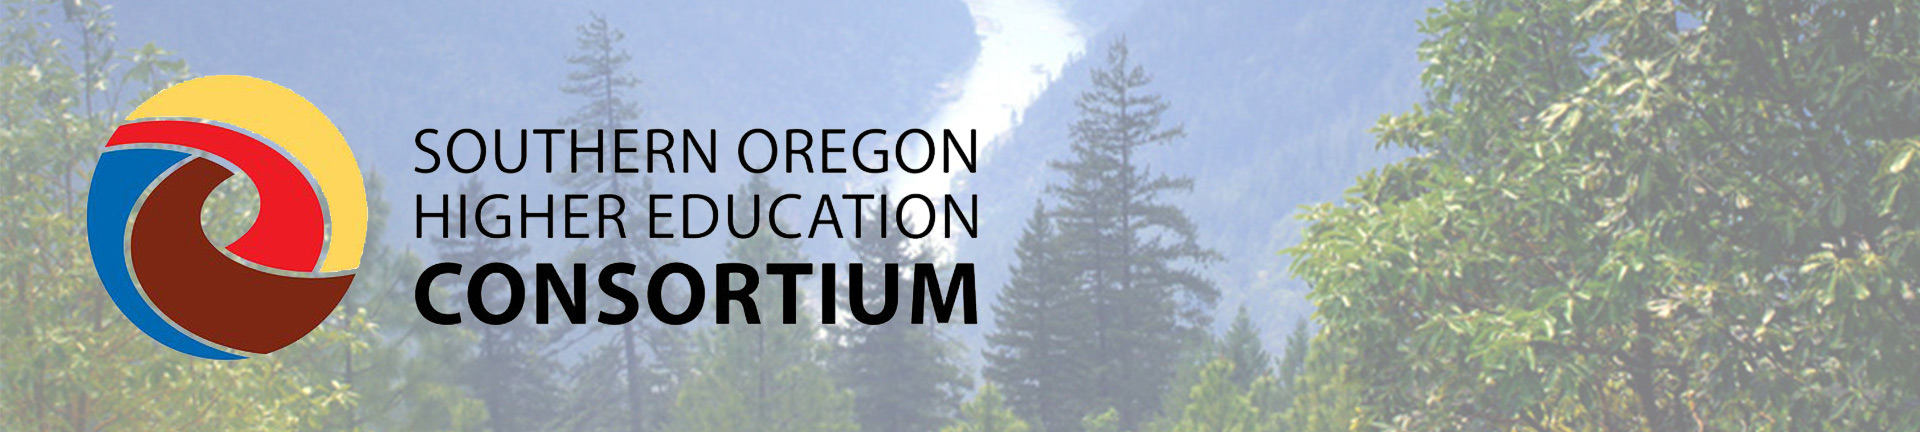 Southern Oregon Higher Education Consortium